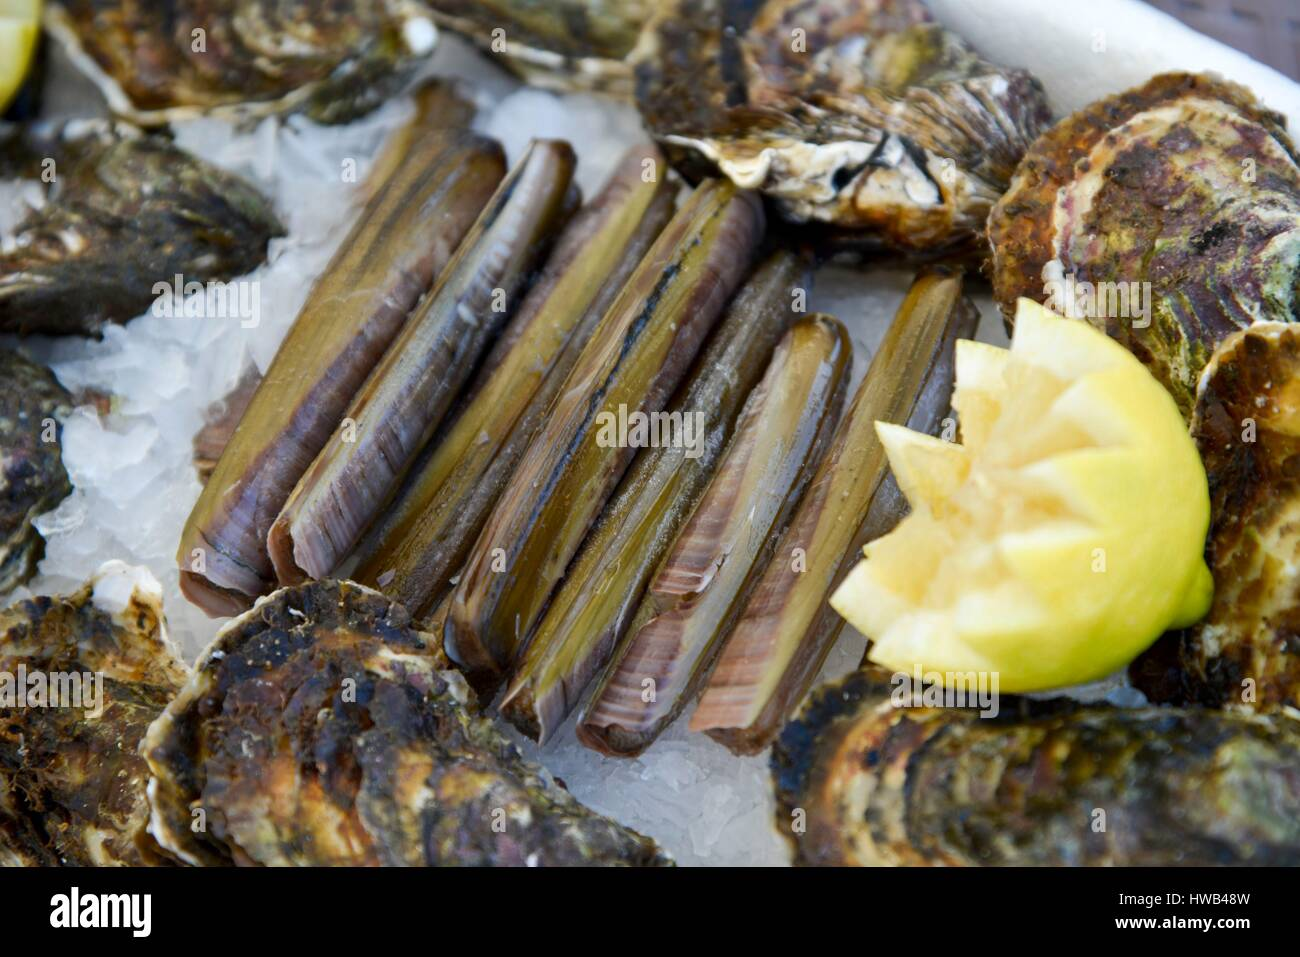 France, Herault, Frontignan, tray of oysters and knives accompanied by a lemon - Stock Image